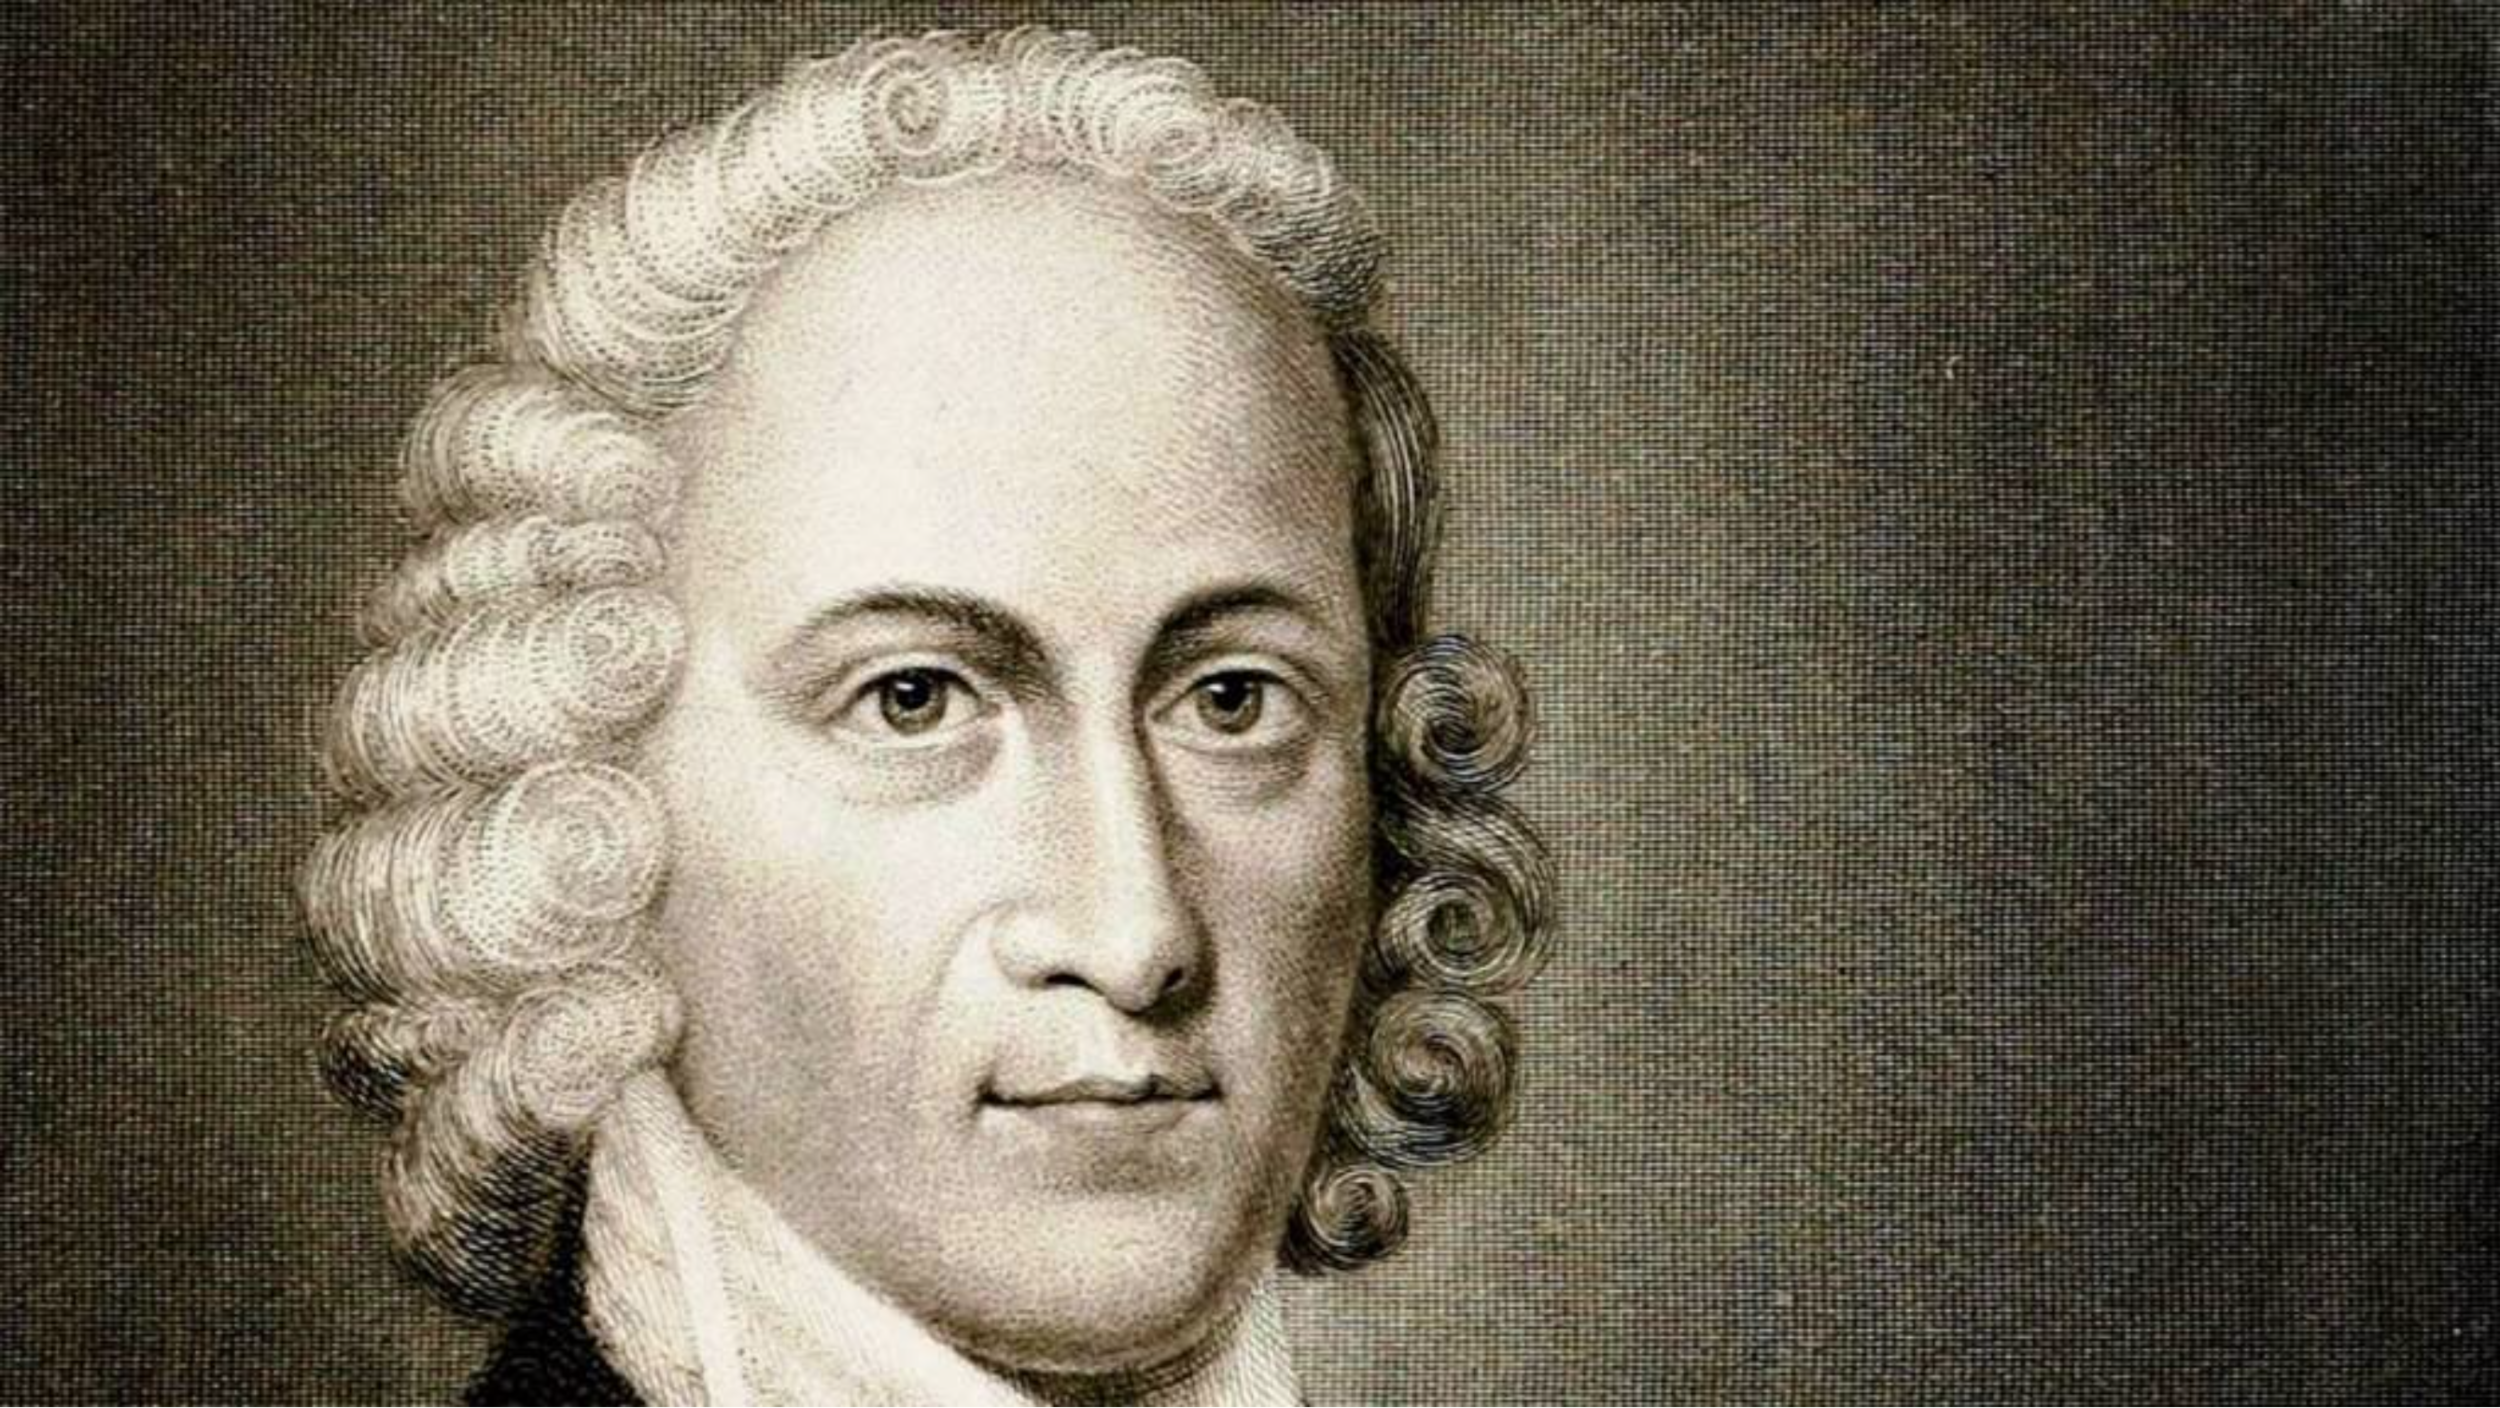 jonathan edwards frontier divine.png